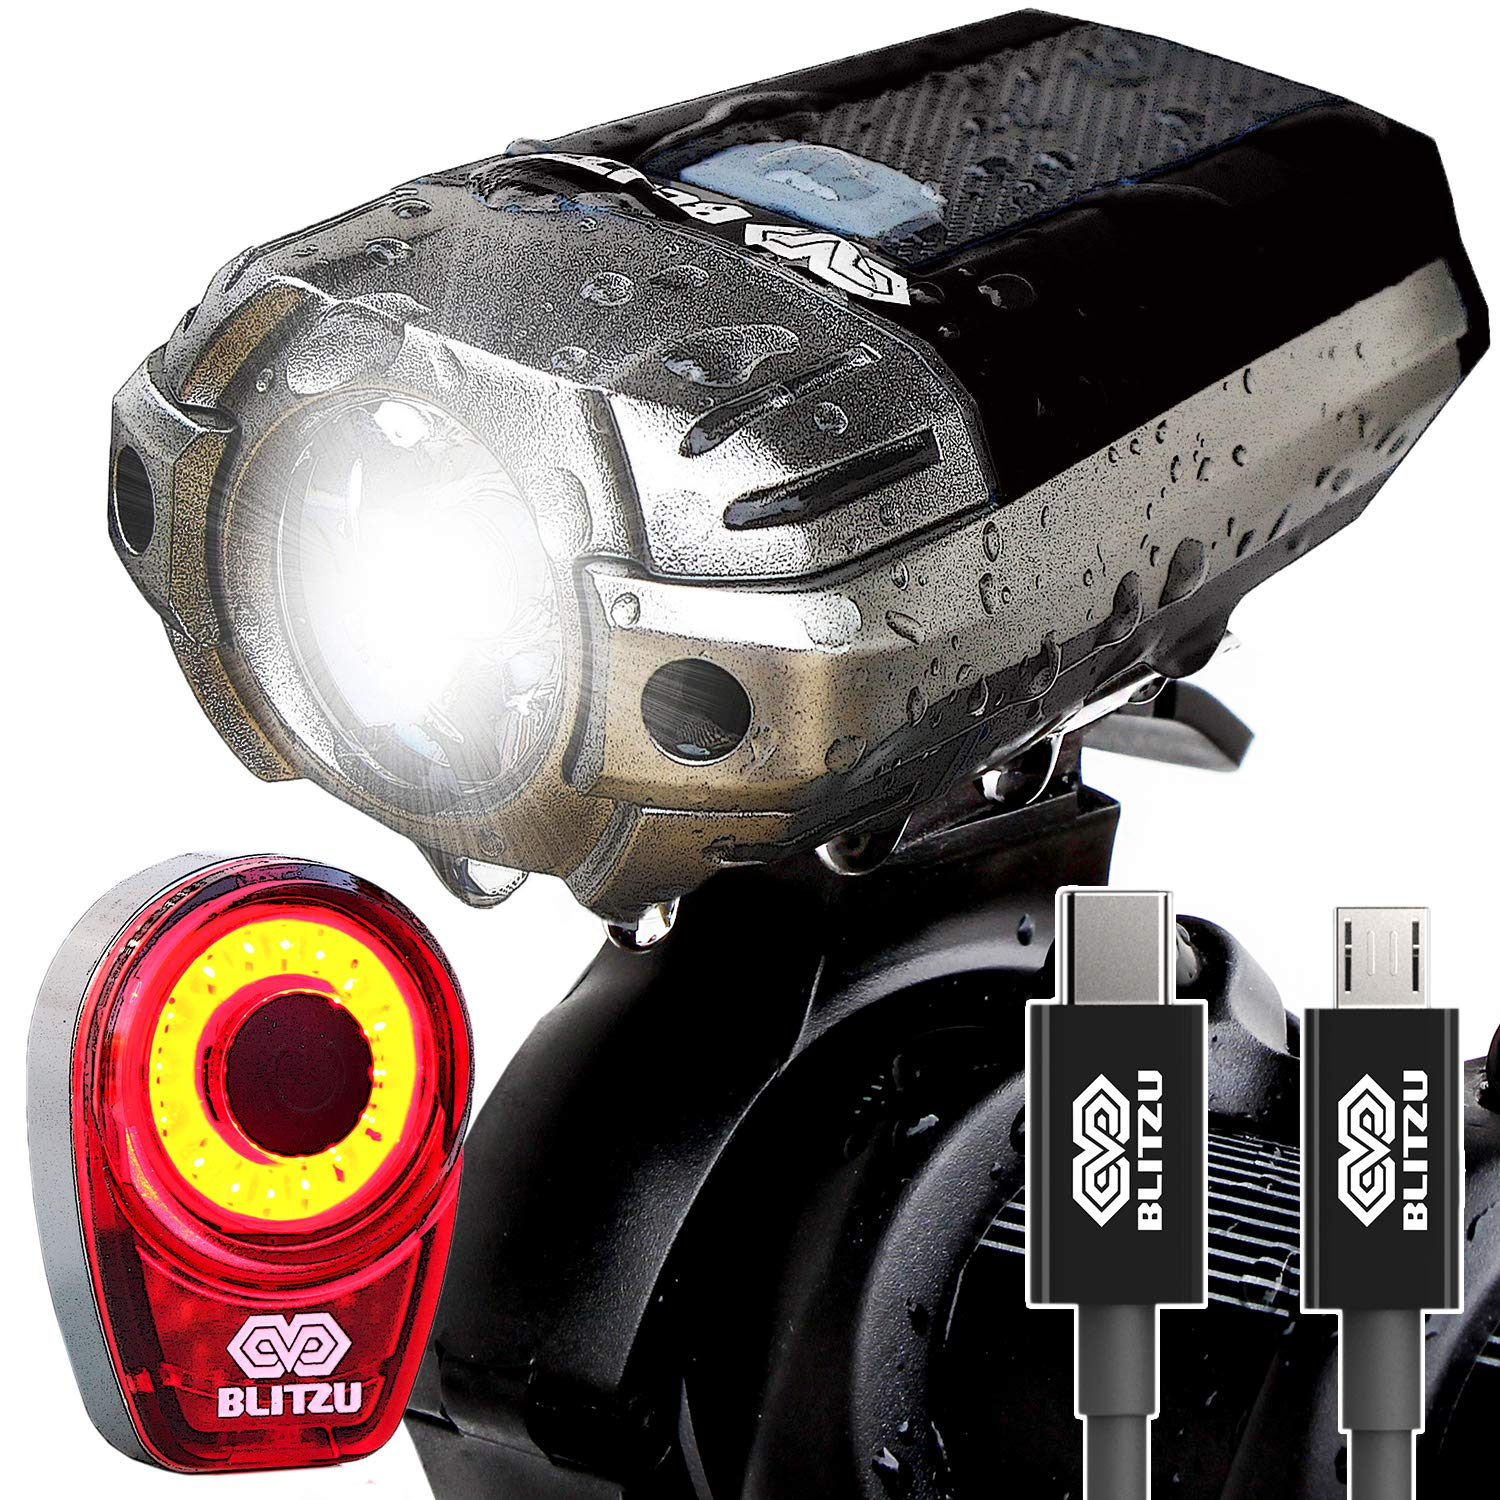 BLITZU Gator 390 USB Rechargeable LED Bike Light Set, Bicycle Headlight Front & Free Rear Back Tail Light. Waterproof, Easy to Install for Kids Men Women Road Cycling Safety Commuter Flashlight Black by BLITZU